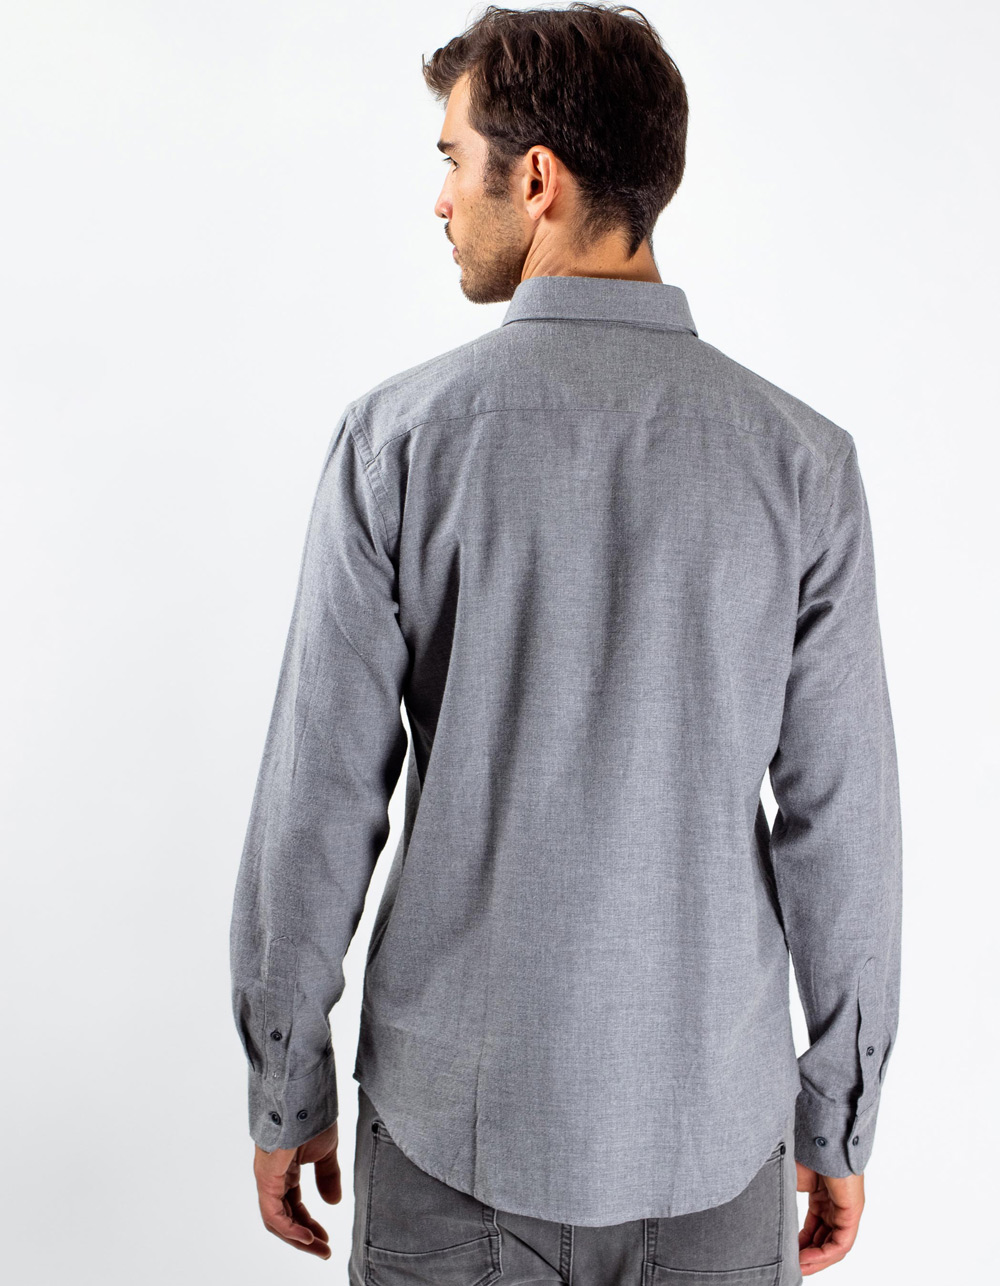 Grey herringbone shirt - Backside